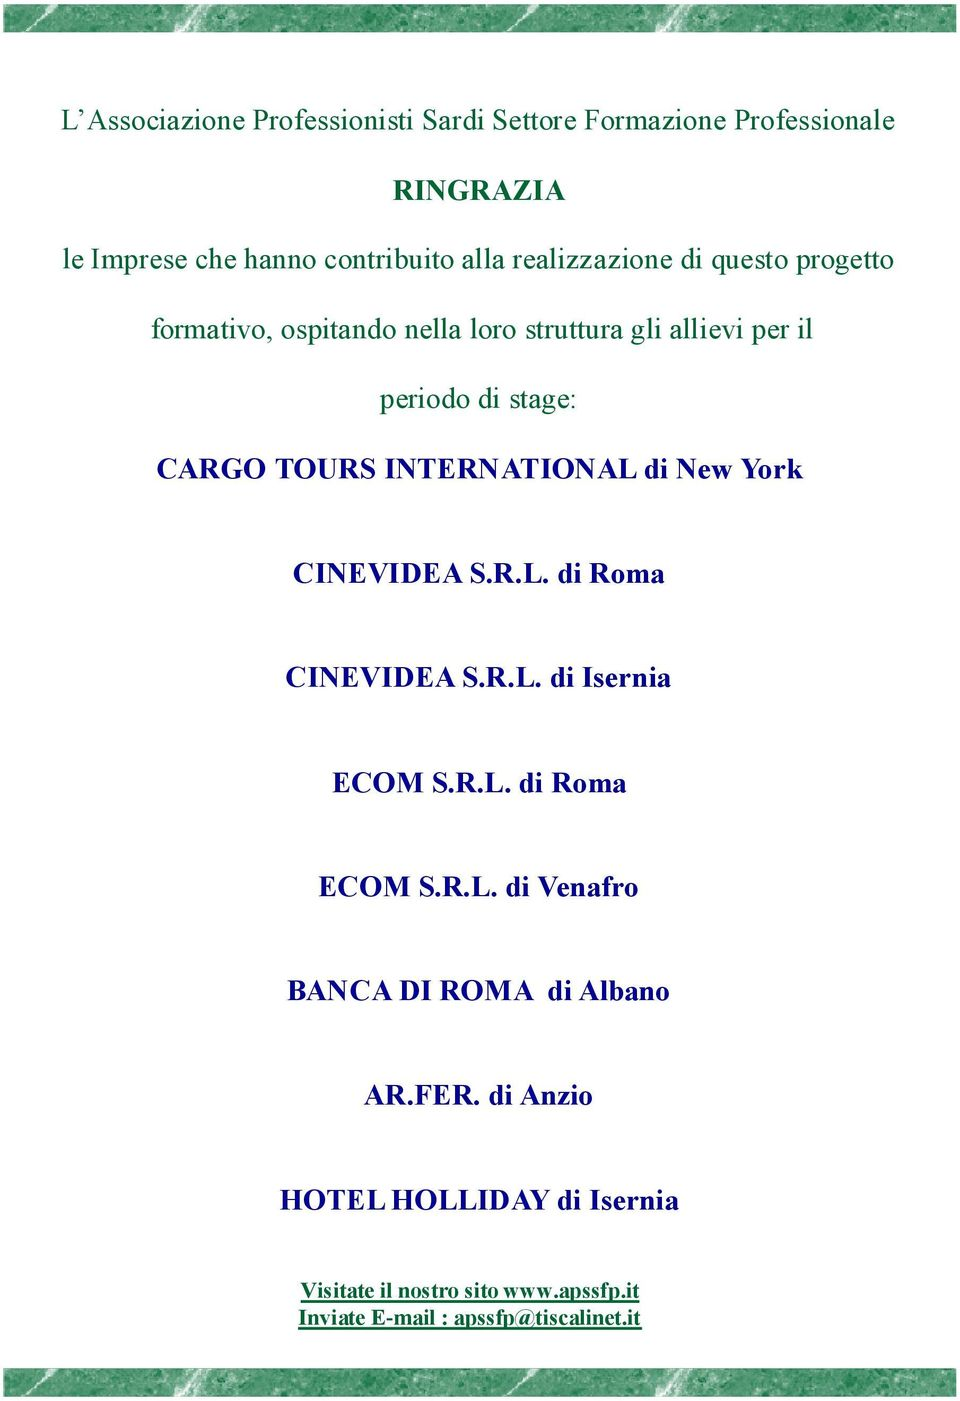 il periodo di stage: CARGO TOURS INTERNATIONAL di New York CINEVIDEA S.R.L. di Roma CINEVIDEA S.R.L. di Isernia ECOM S.